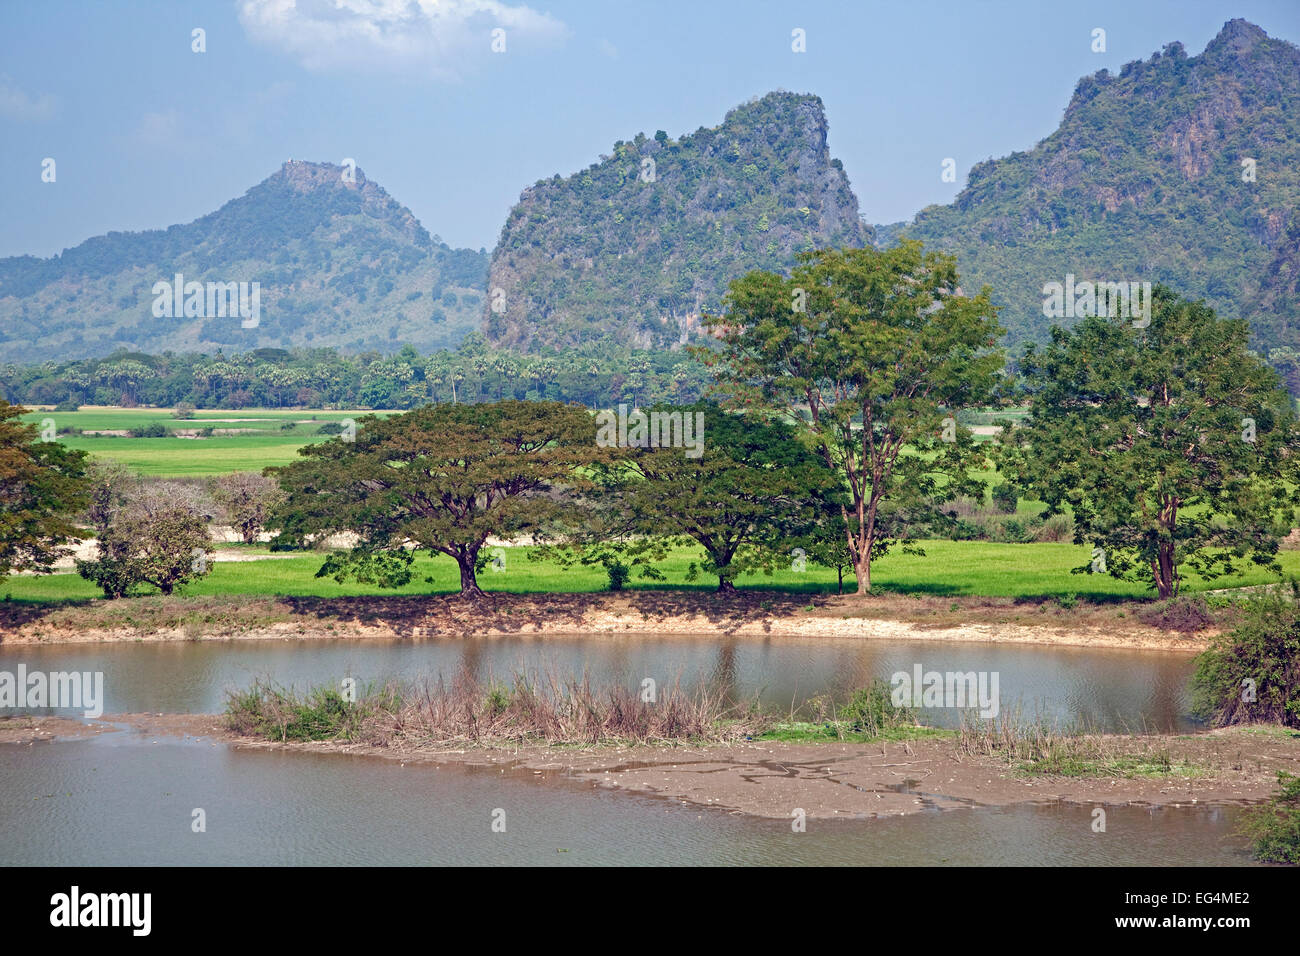 Than Lwin / Salween River and view over the rocky karst outcrops and mountains near Hpa-an, Kayin / Karen State, Stock Photo